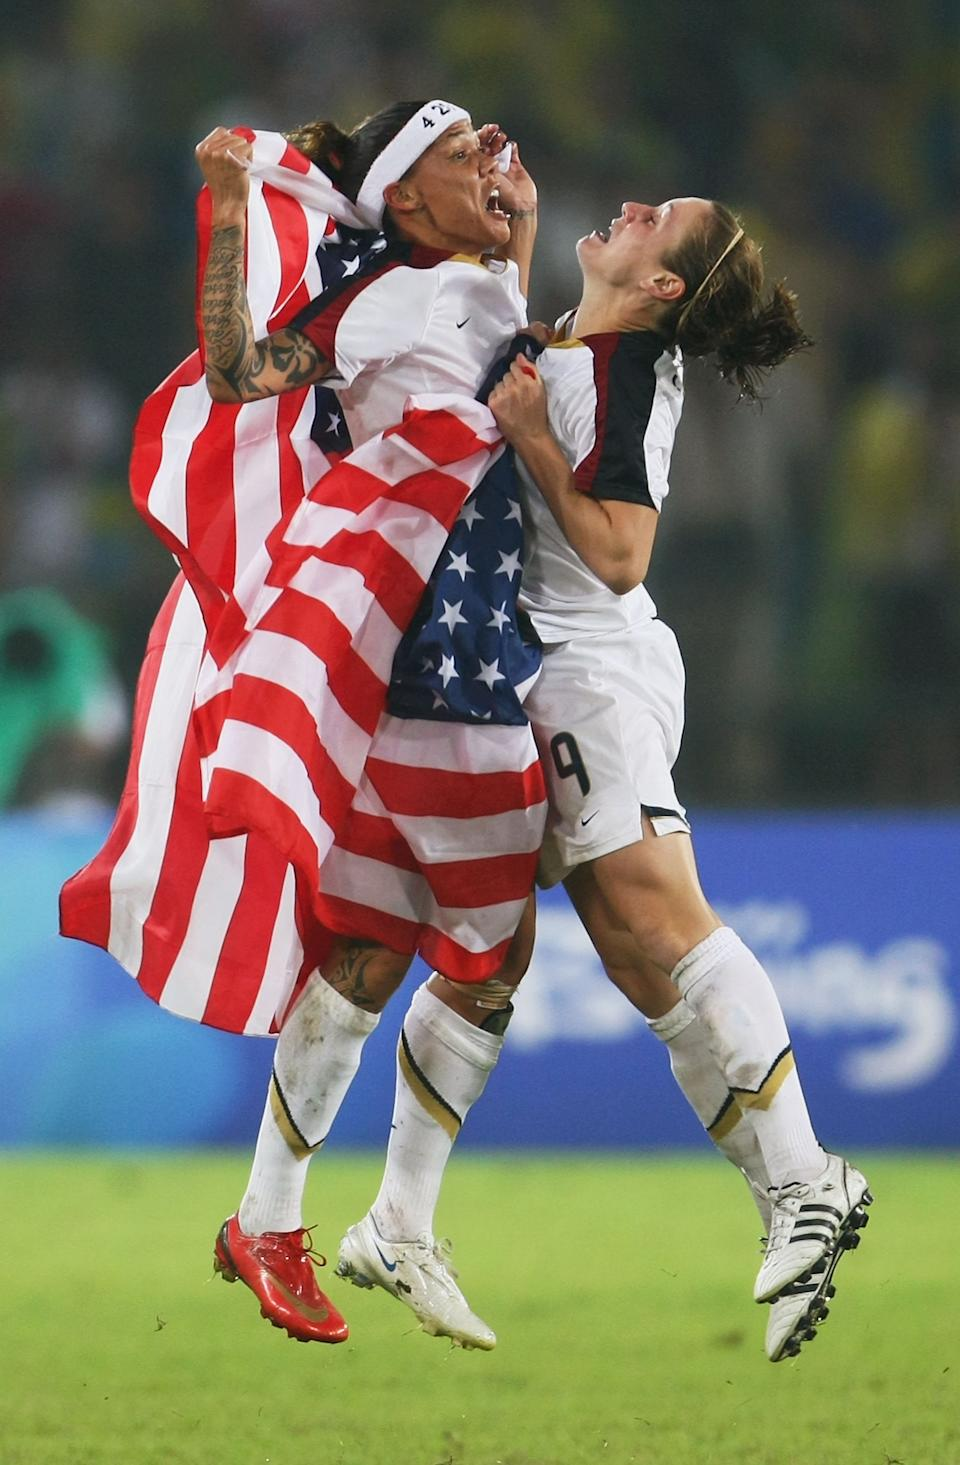 Heather O'Reilly (#9) and Natasha Kai (#6) of United States celebrate after winning the Women's Football Gold Medal match between Brazil and the United States 0-1 on Day 13 of the Beijing 2008 Olympic Games on August 21, 2008 at Worker's Stadium in Beijing, China. (Photo by Lars Baron/Bongarts/Getty Images)